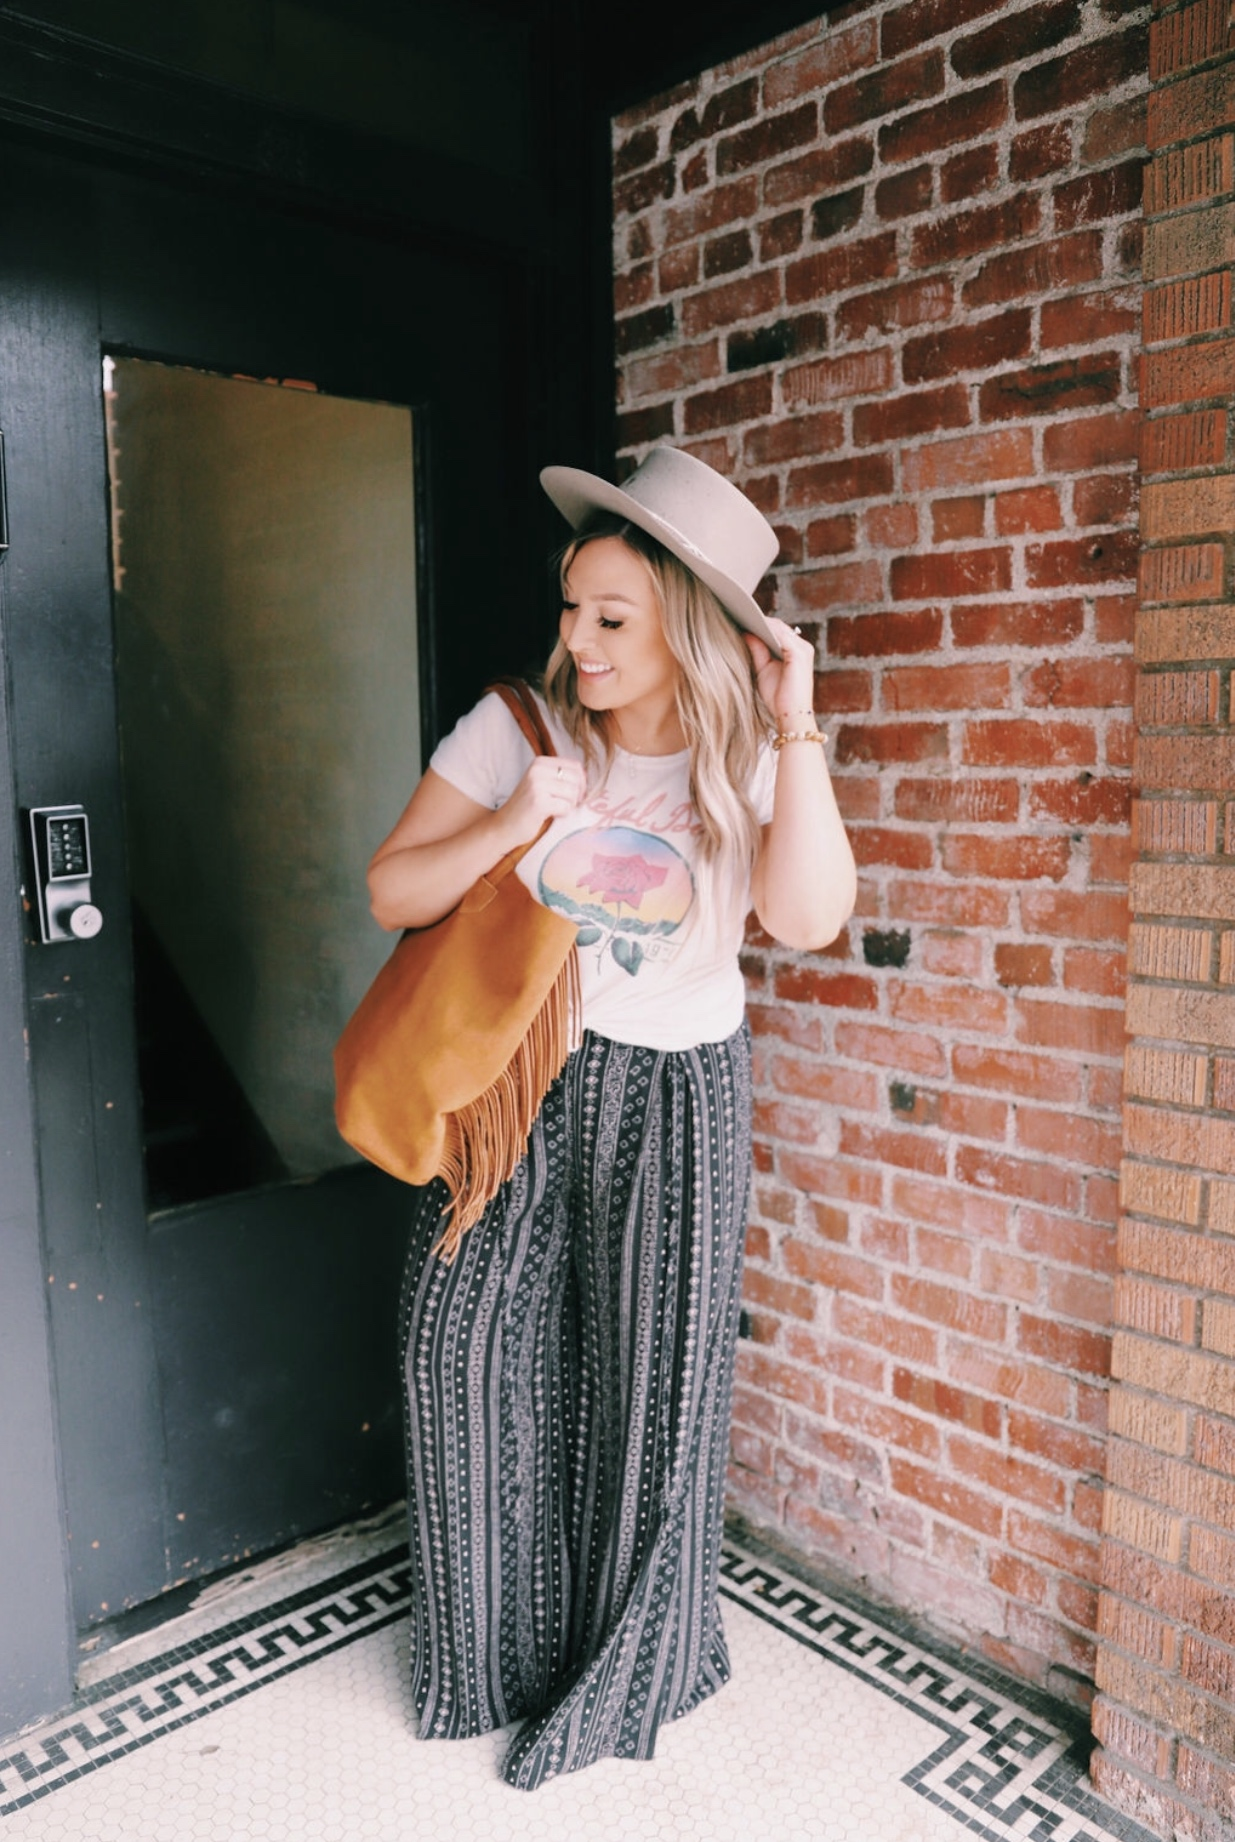 Retro clothing and boho vibes from founder Ivy Pemberton of Fig + Ivy Collective in Roseville, California